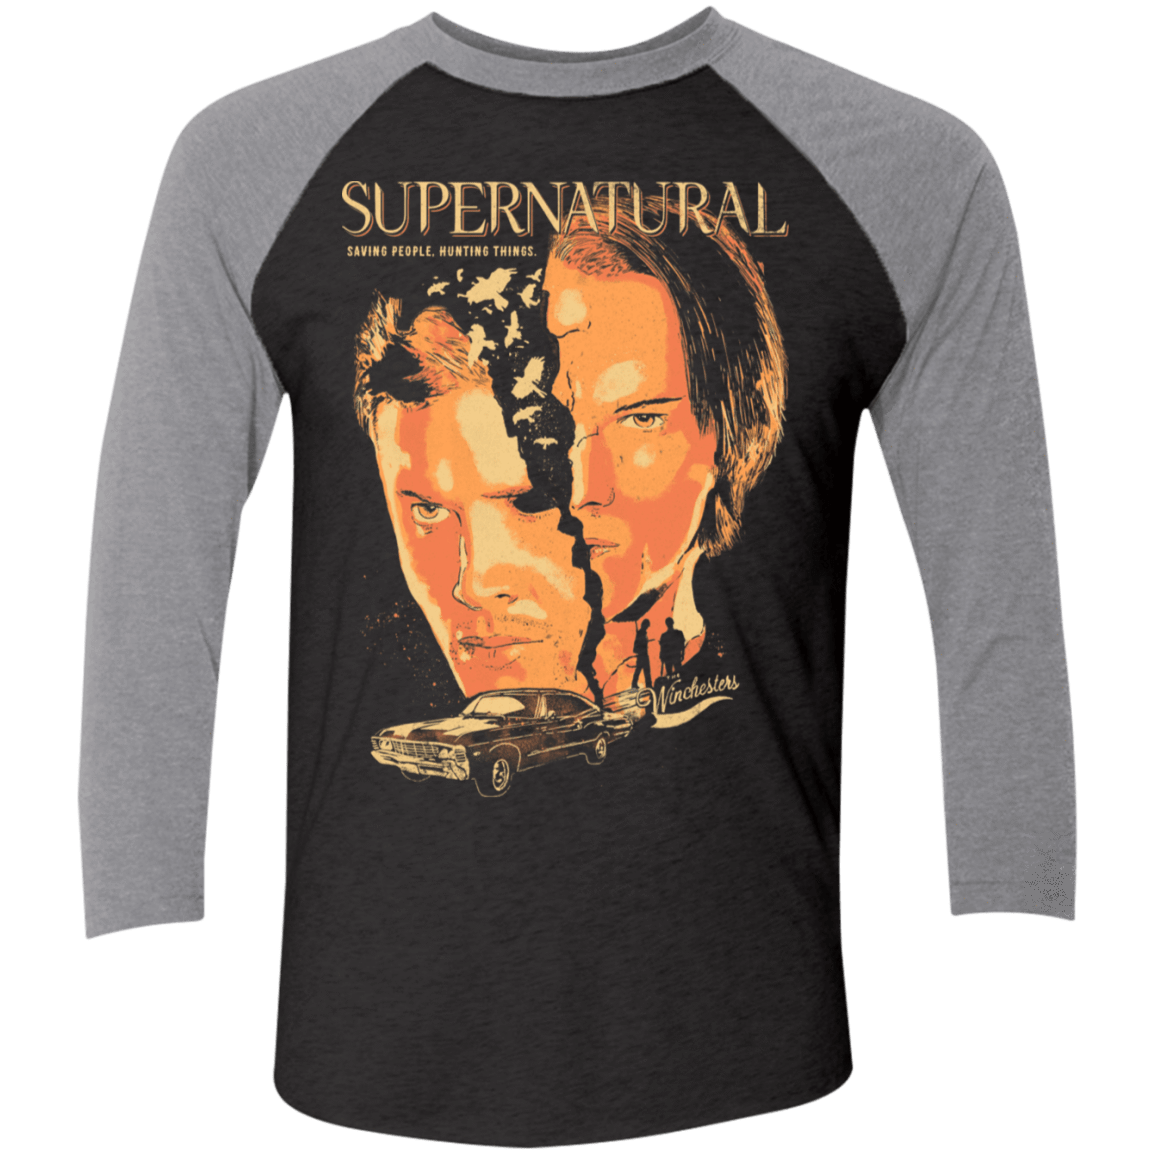 Supernatural Men's Triblend 3/4 Sleeve